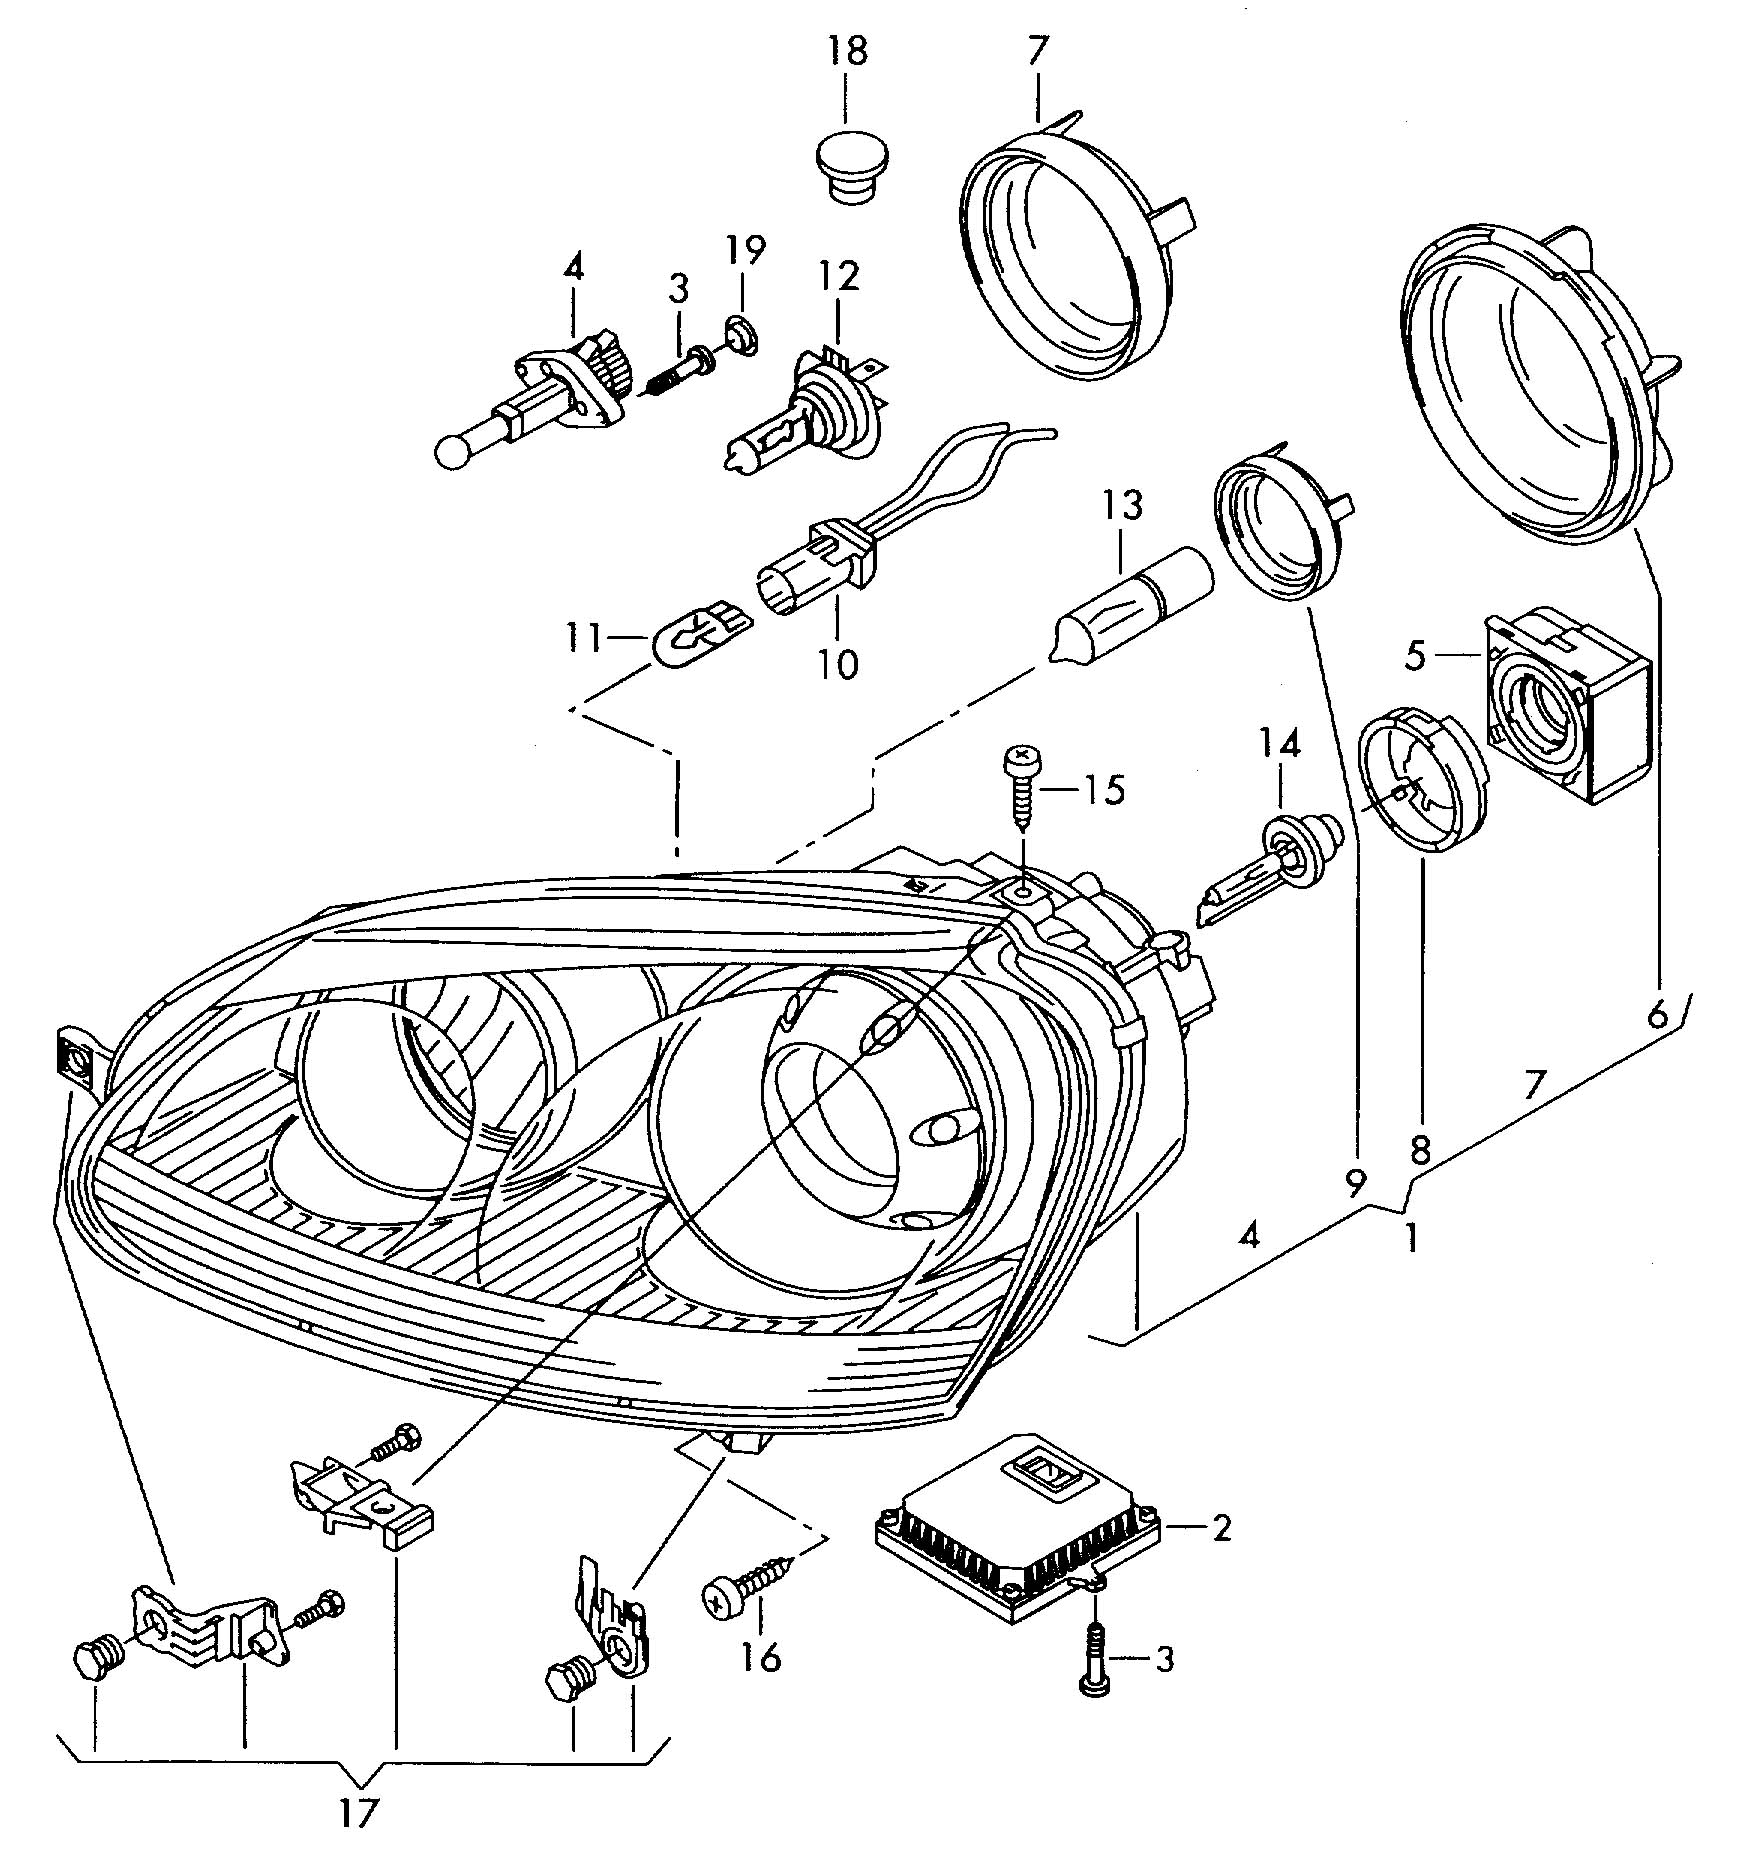 420941200 Radio Wiring Diagram Vw Gti on vacuum line location, charging port intermittent, shift hosing replacement, shift housing replacement, oem turbo brand, engine compartment pic, ground effects package, sri tuned, hatch well subwoofer box,